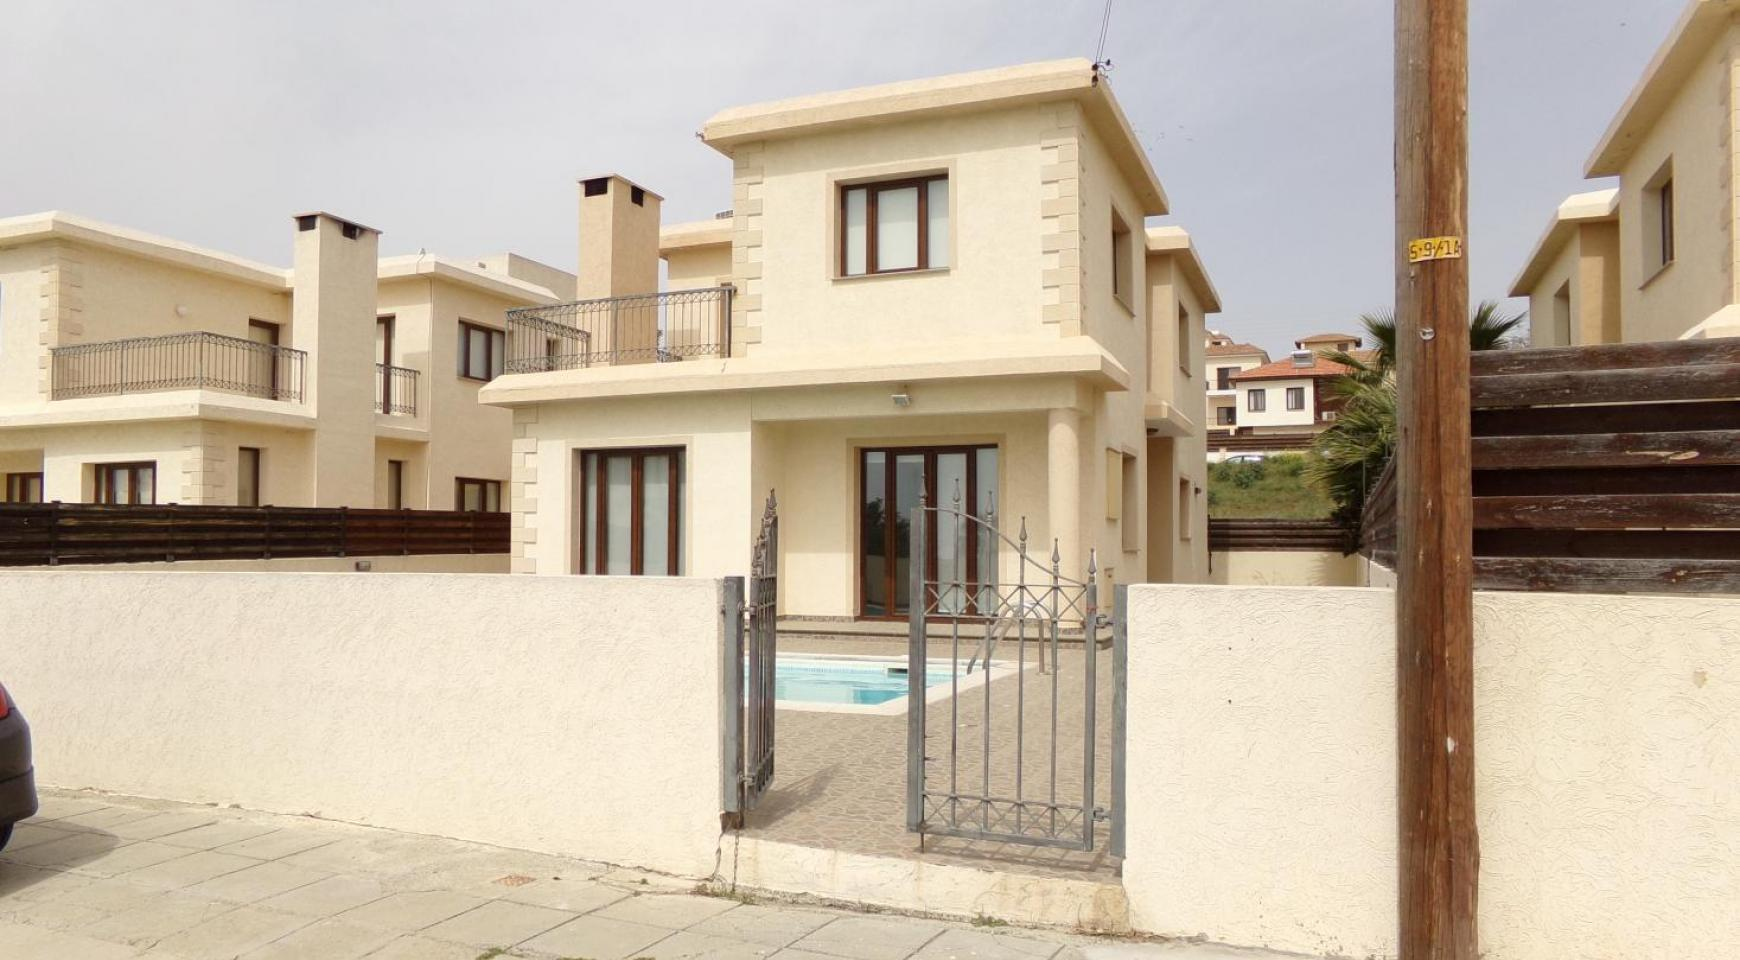 4 Bedroom Villa with Sea and Mountain Views in Pissouri Village - 4